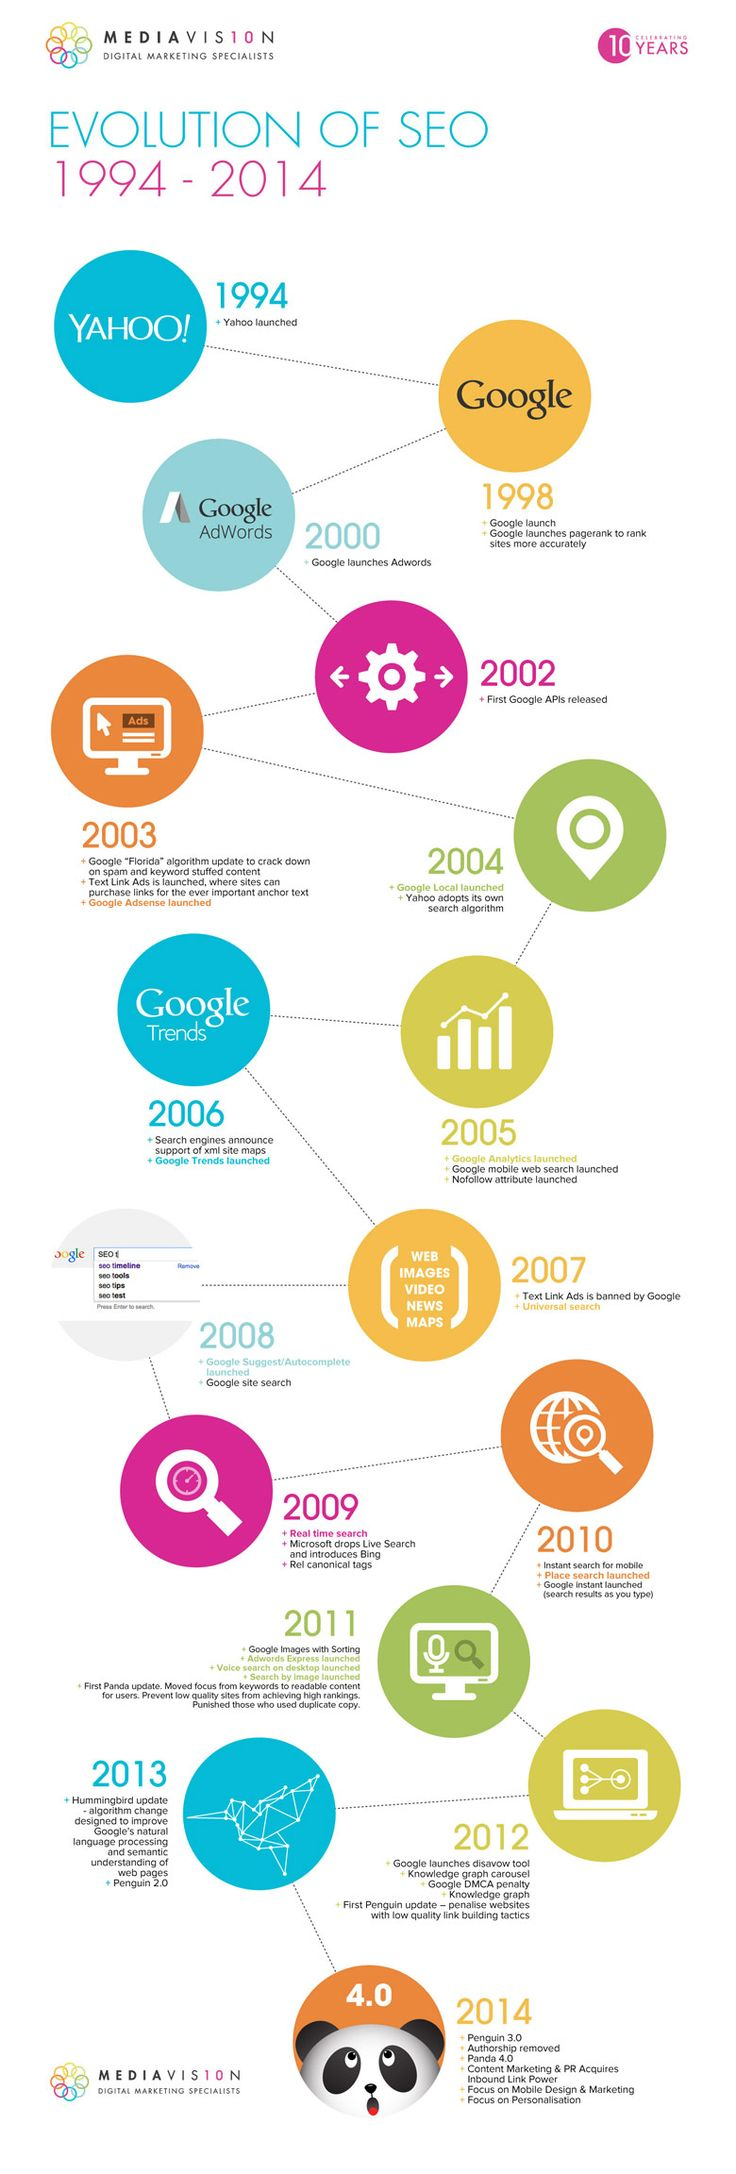 The Evolution of Search and Google SEO, an Infographic search engine optimization Google Keywords Panda SEO has evolved along with a other digital tools